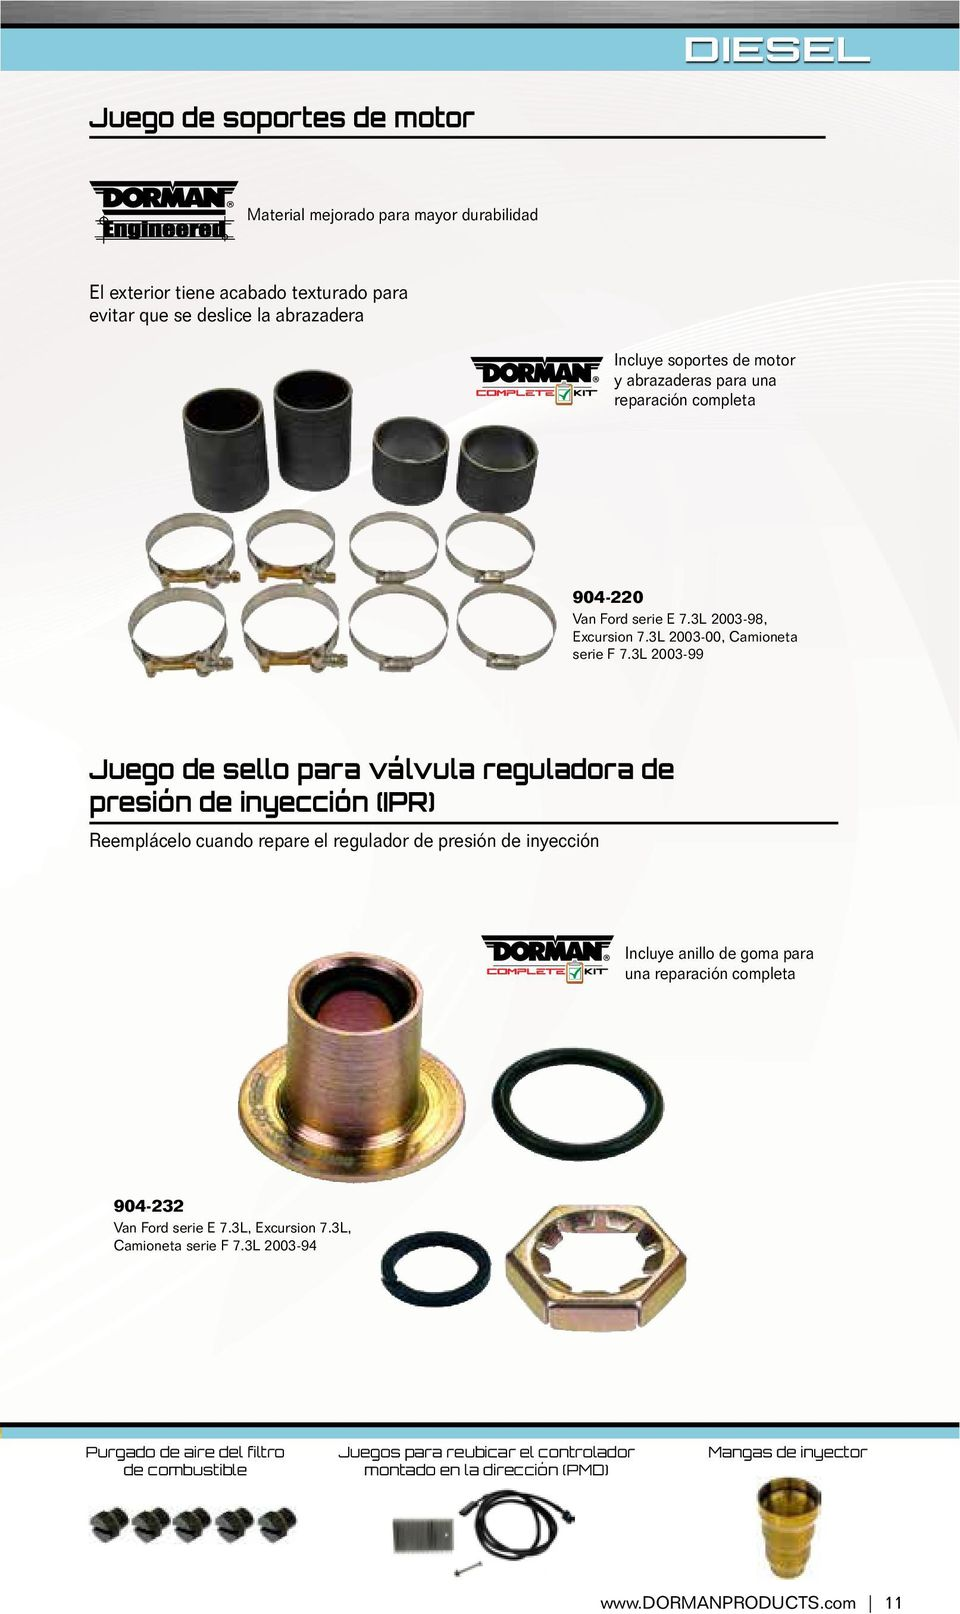 Previously Parts Now Available As Spare Audi Blog Jeep Wrangler Fuel Filter Replacement 12 Diesel Engineered Injector Sleeve Improved Material For Durability Includes Rubber Rings Complete Repair Chevrolet Silverado 66l Gmc Sierra